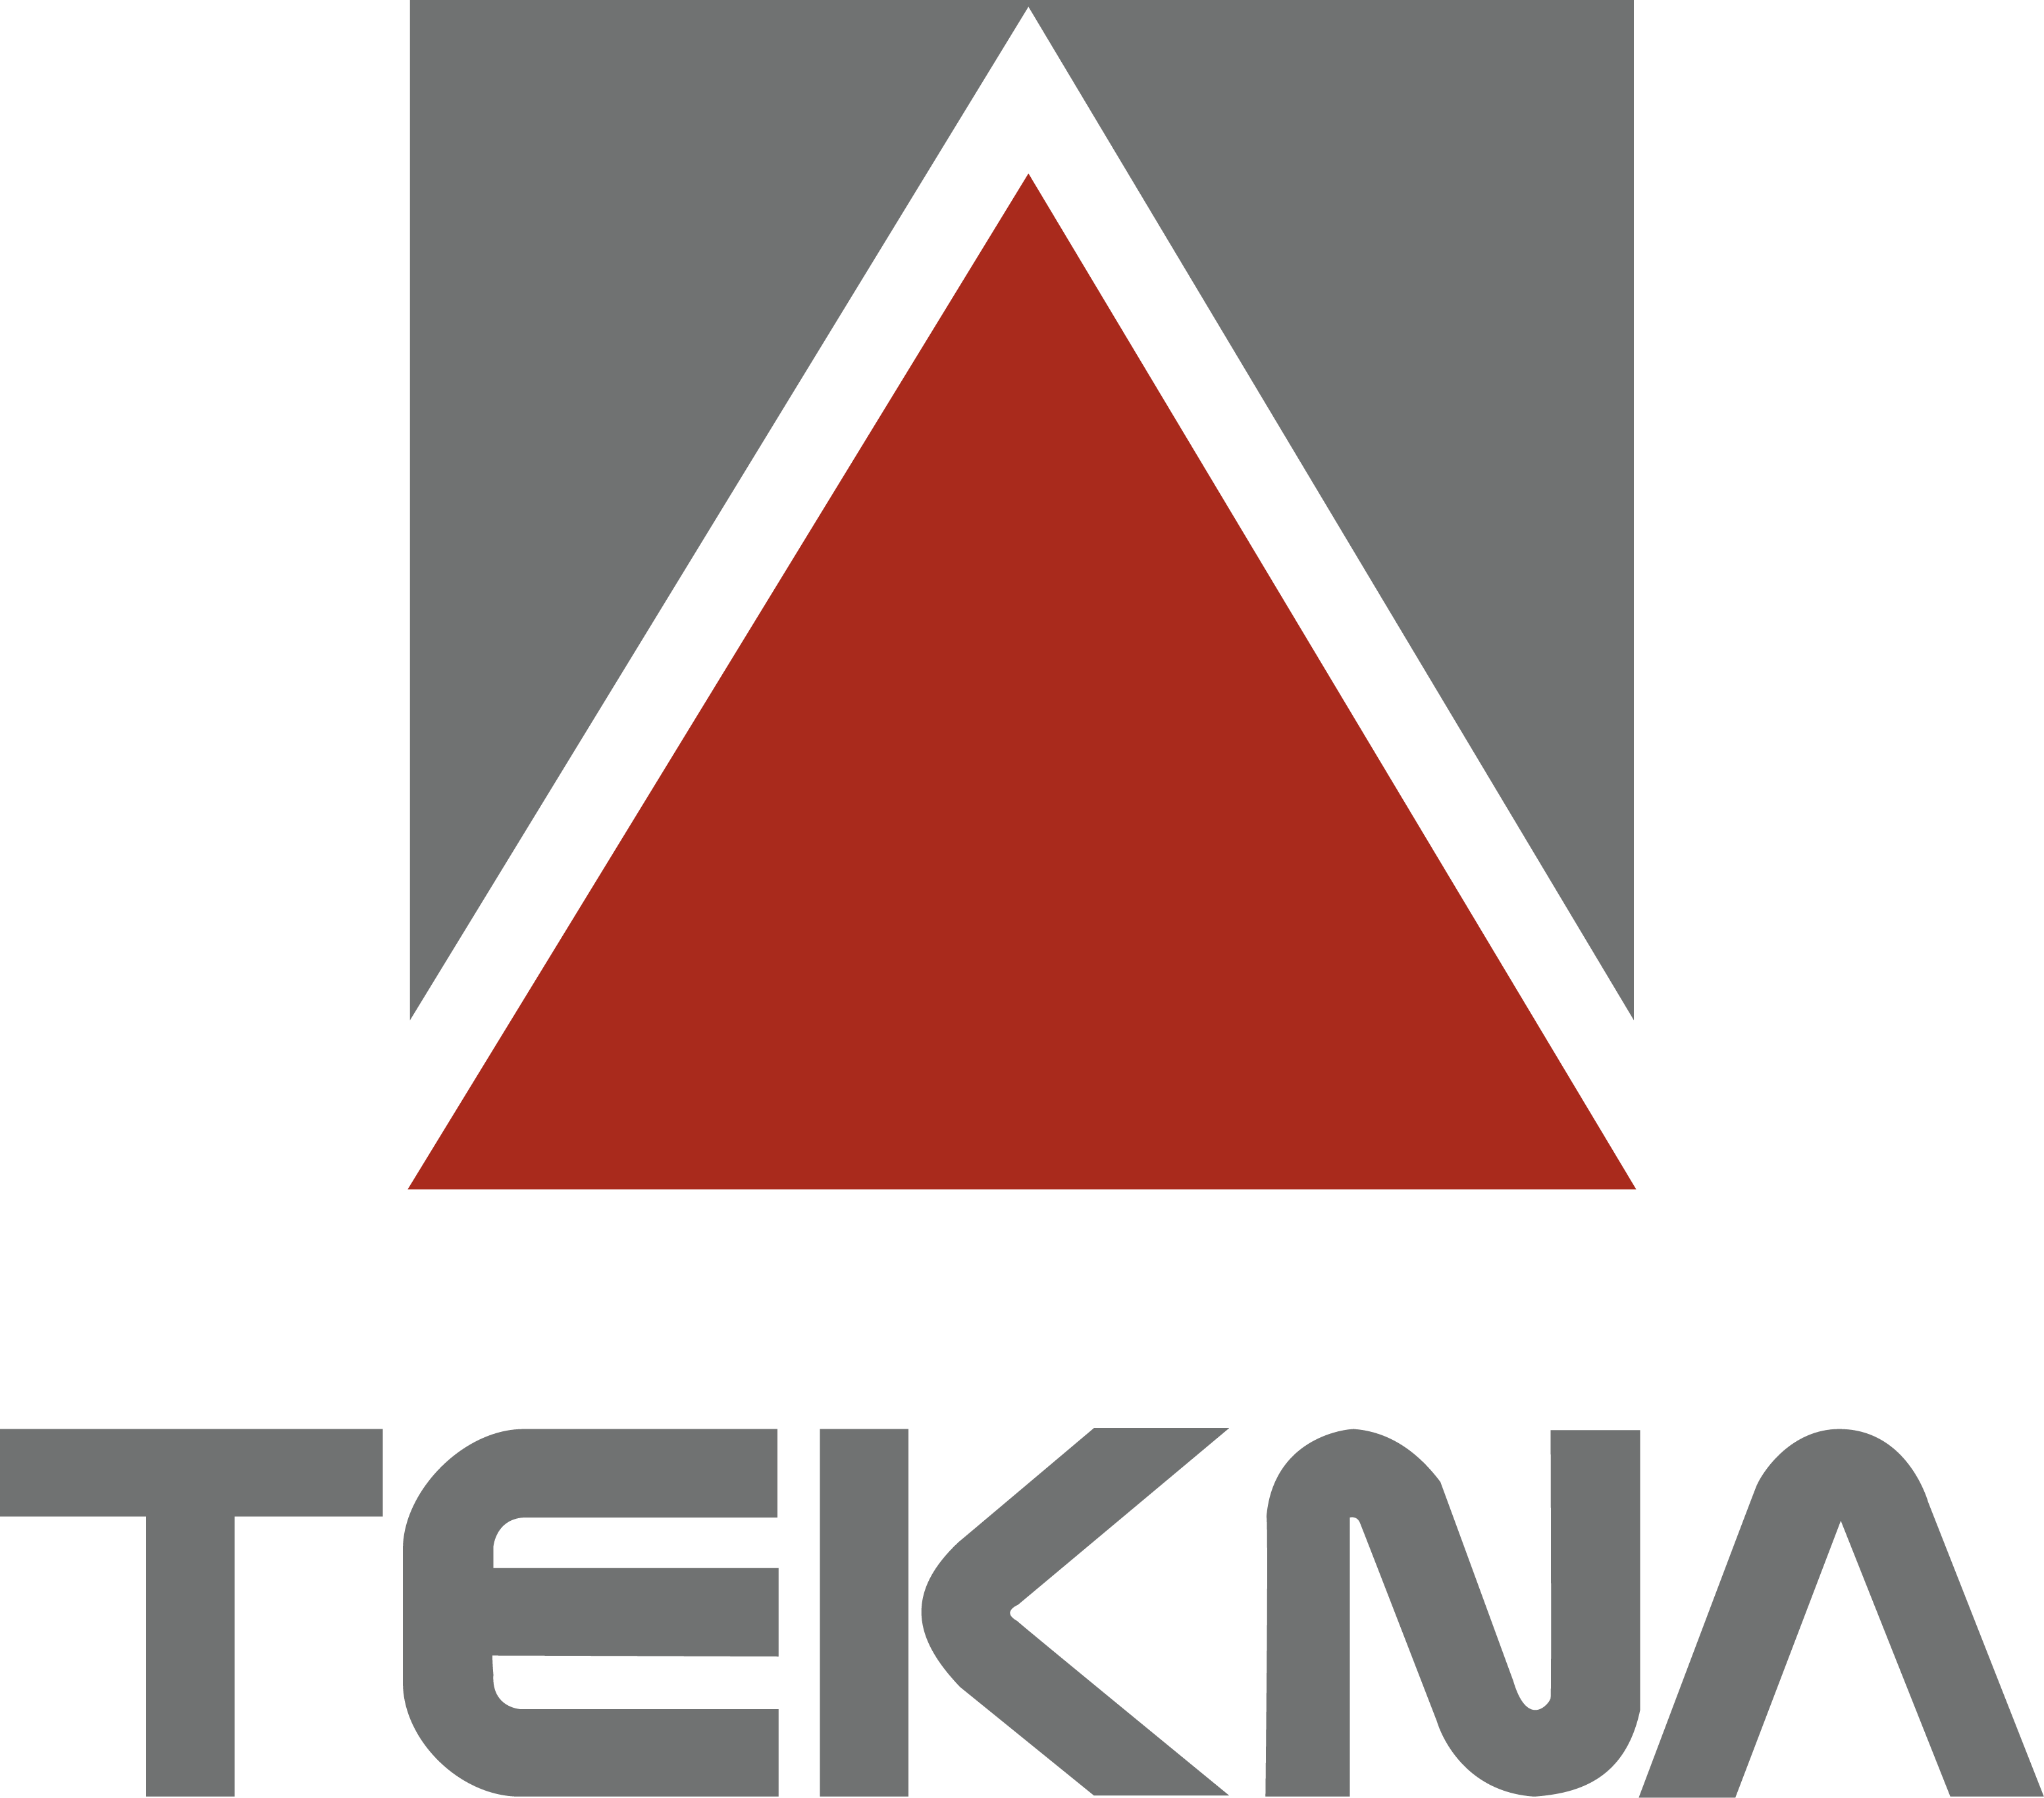 Tekna launches its activities in industrial powder production in Europe